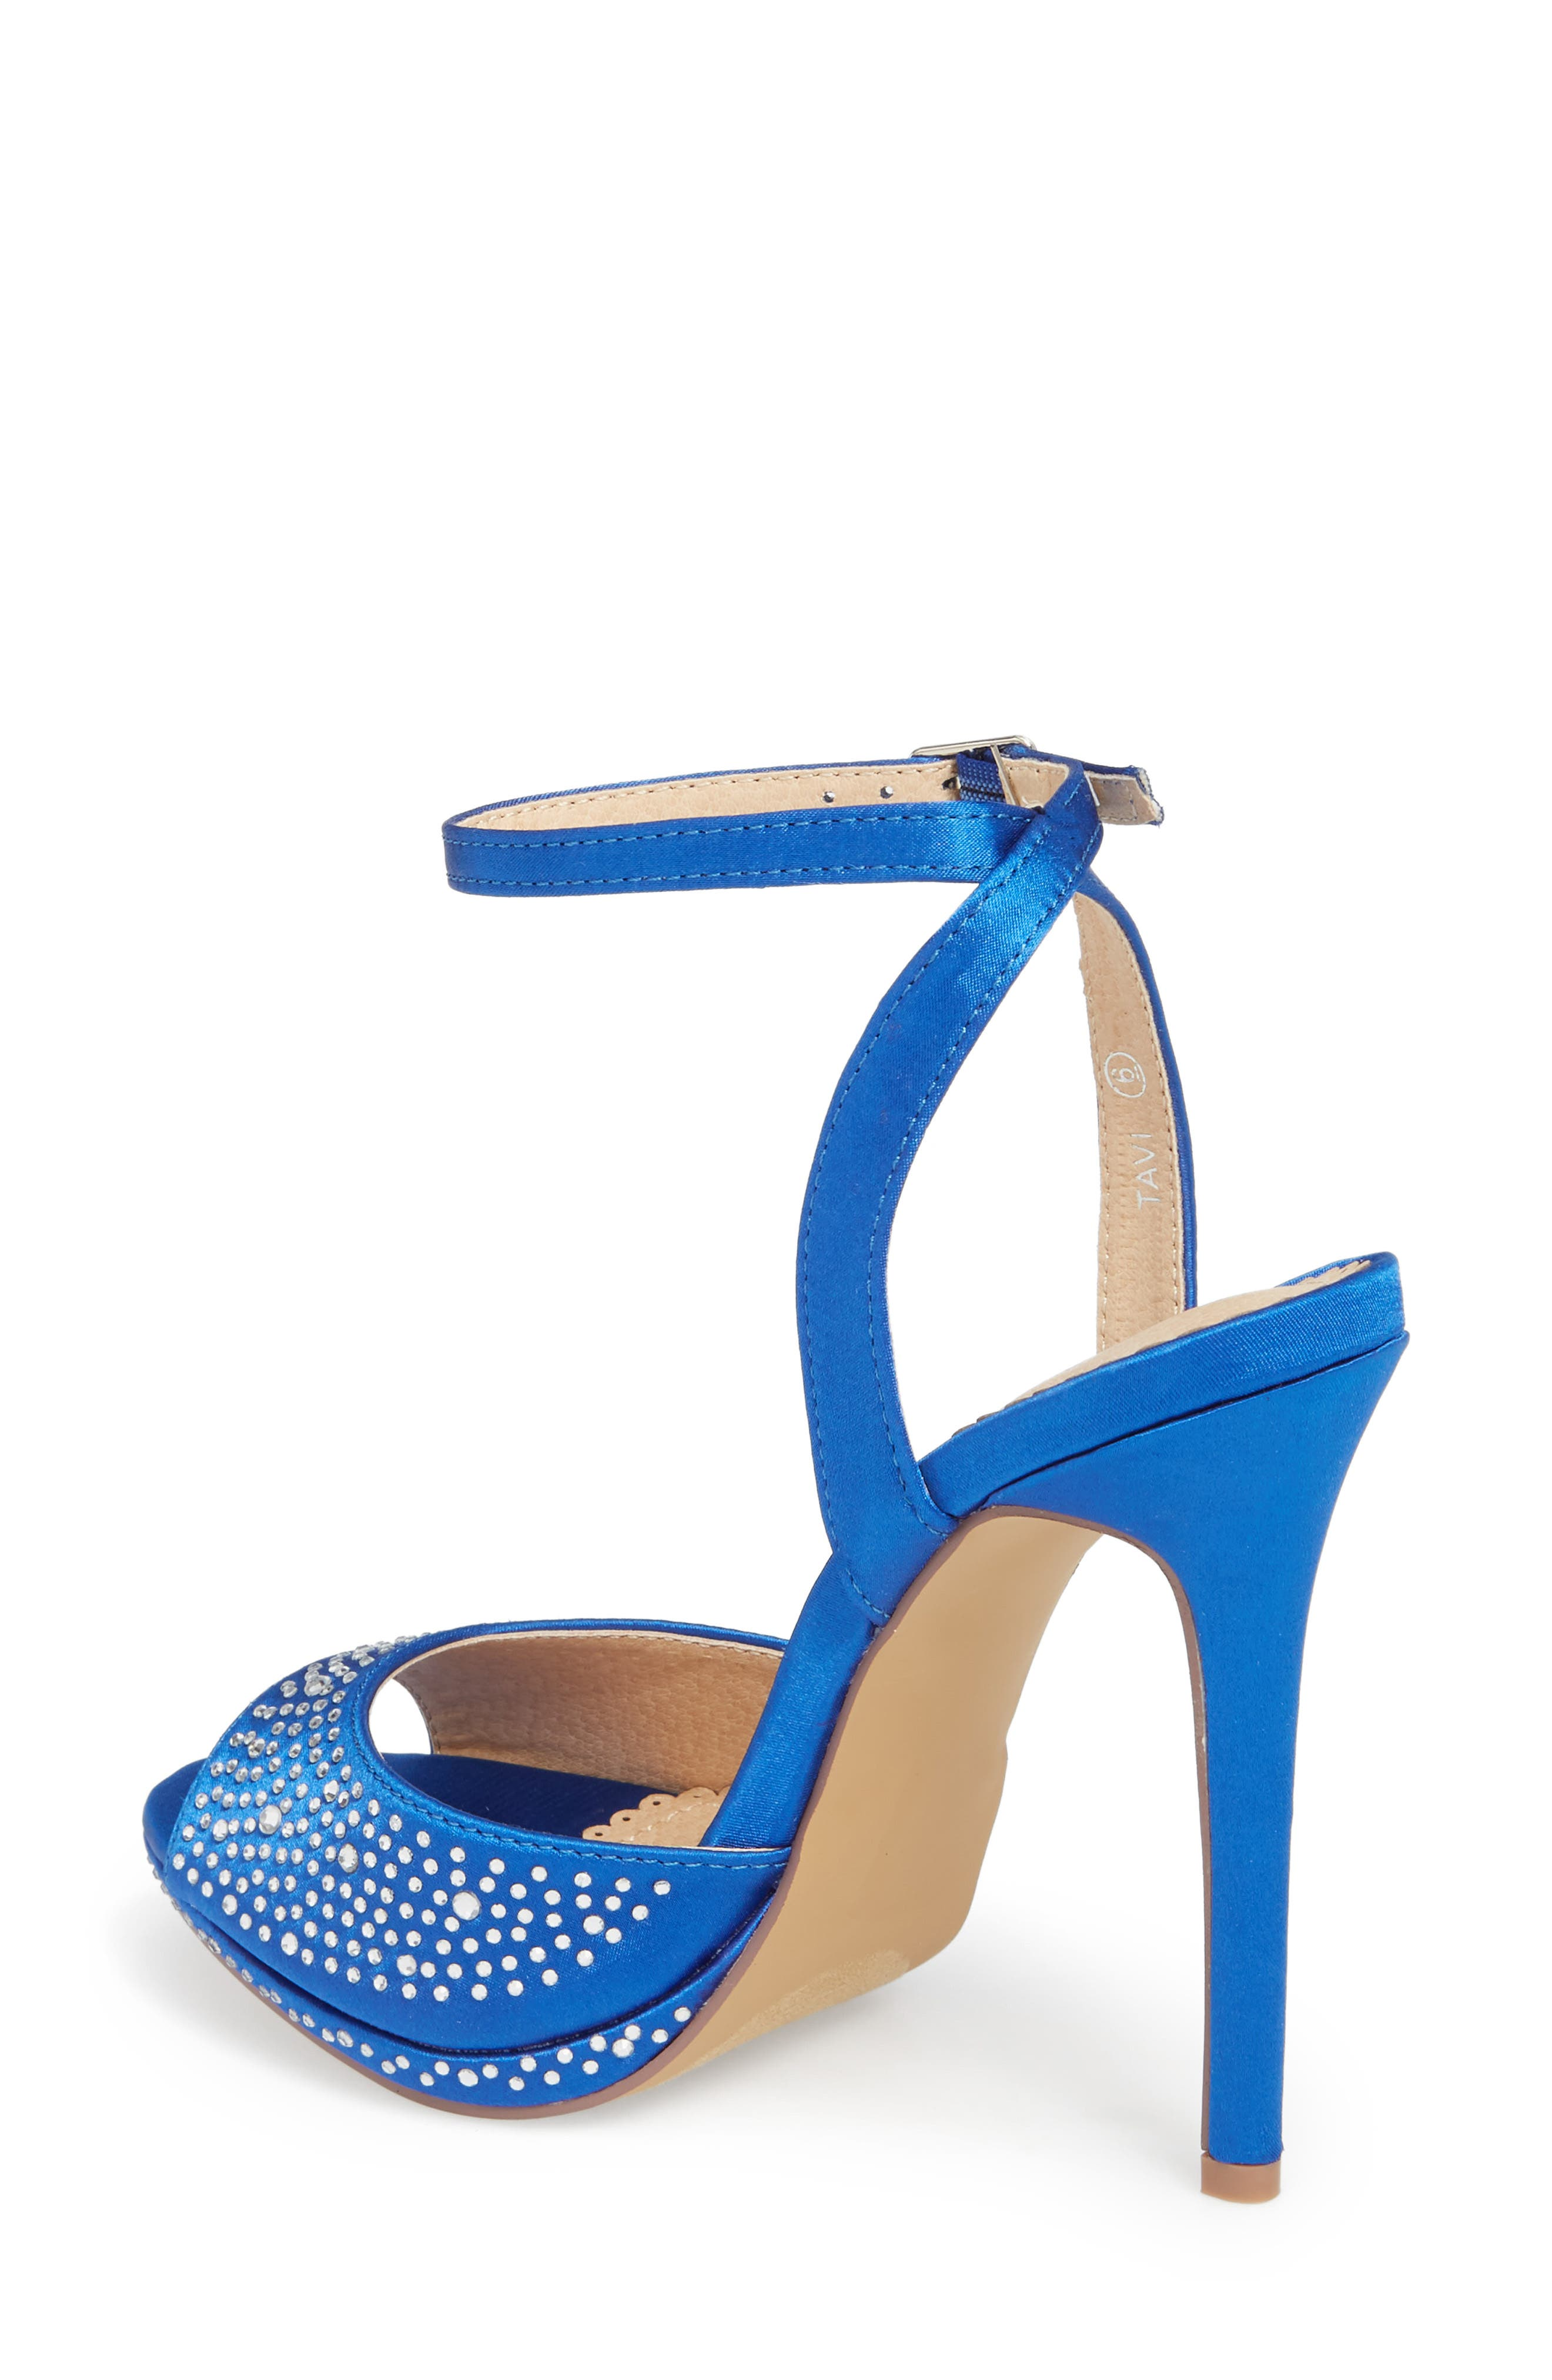 Tavi Sandal,                             Alternate thumbnail 2, color,                             Royal Blue Fabric